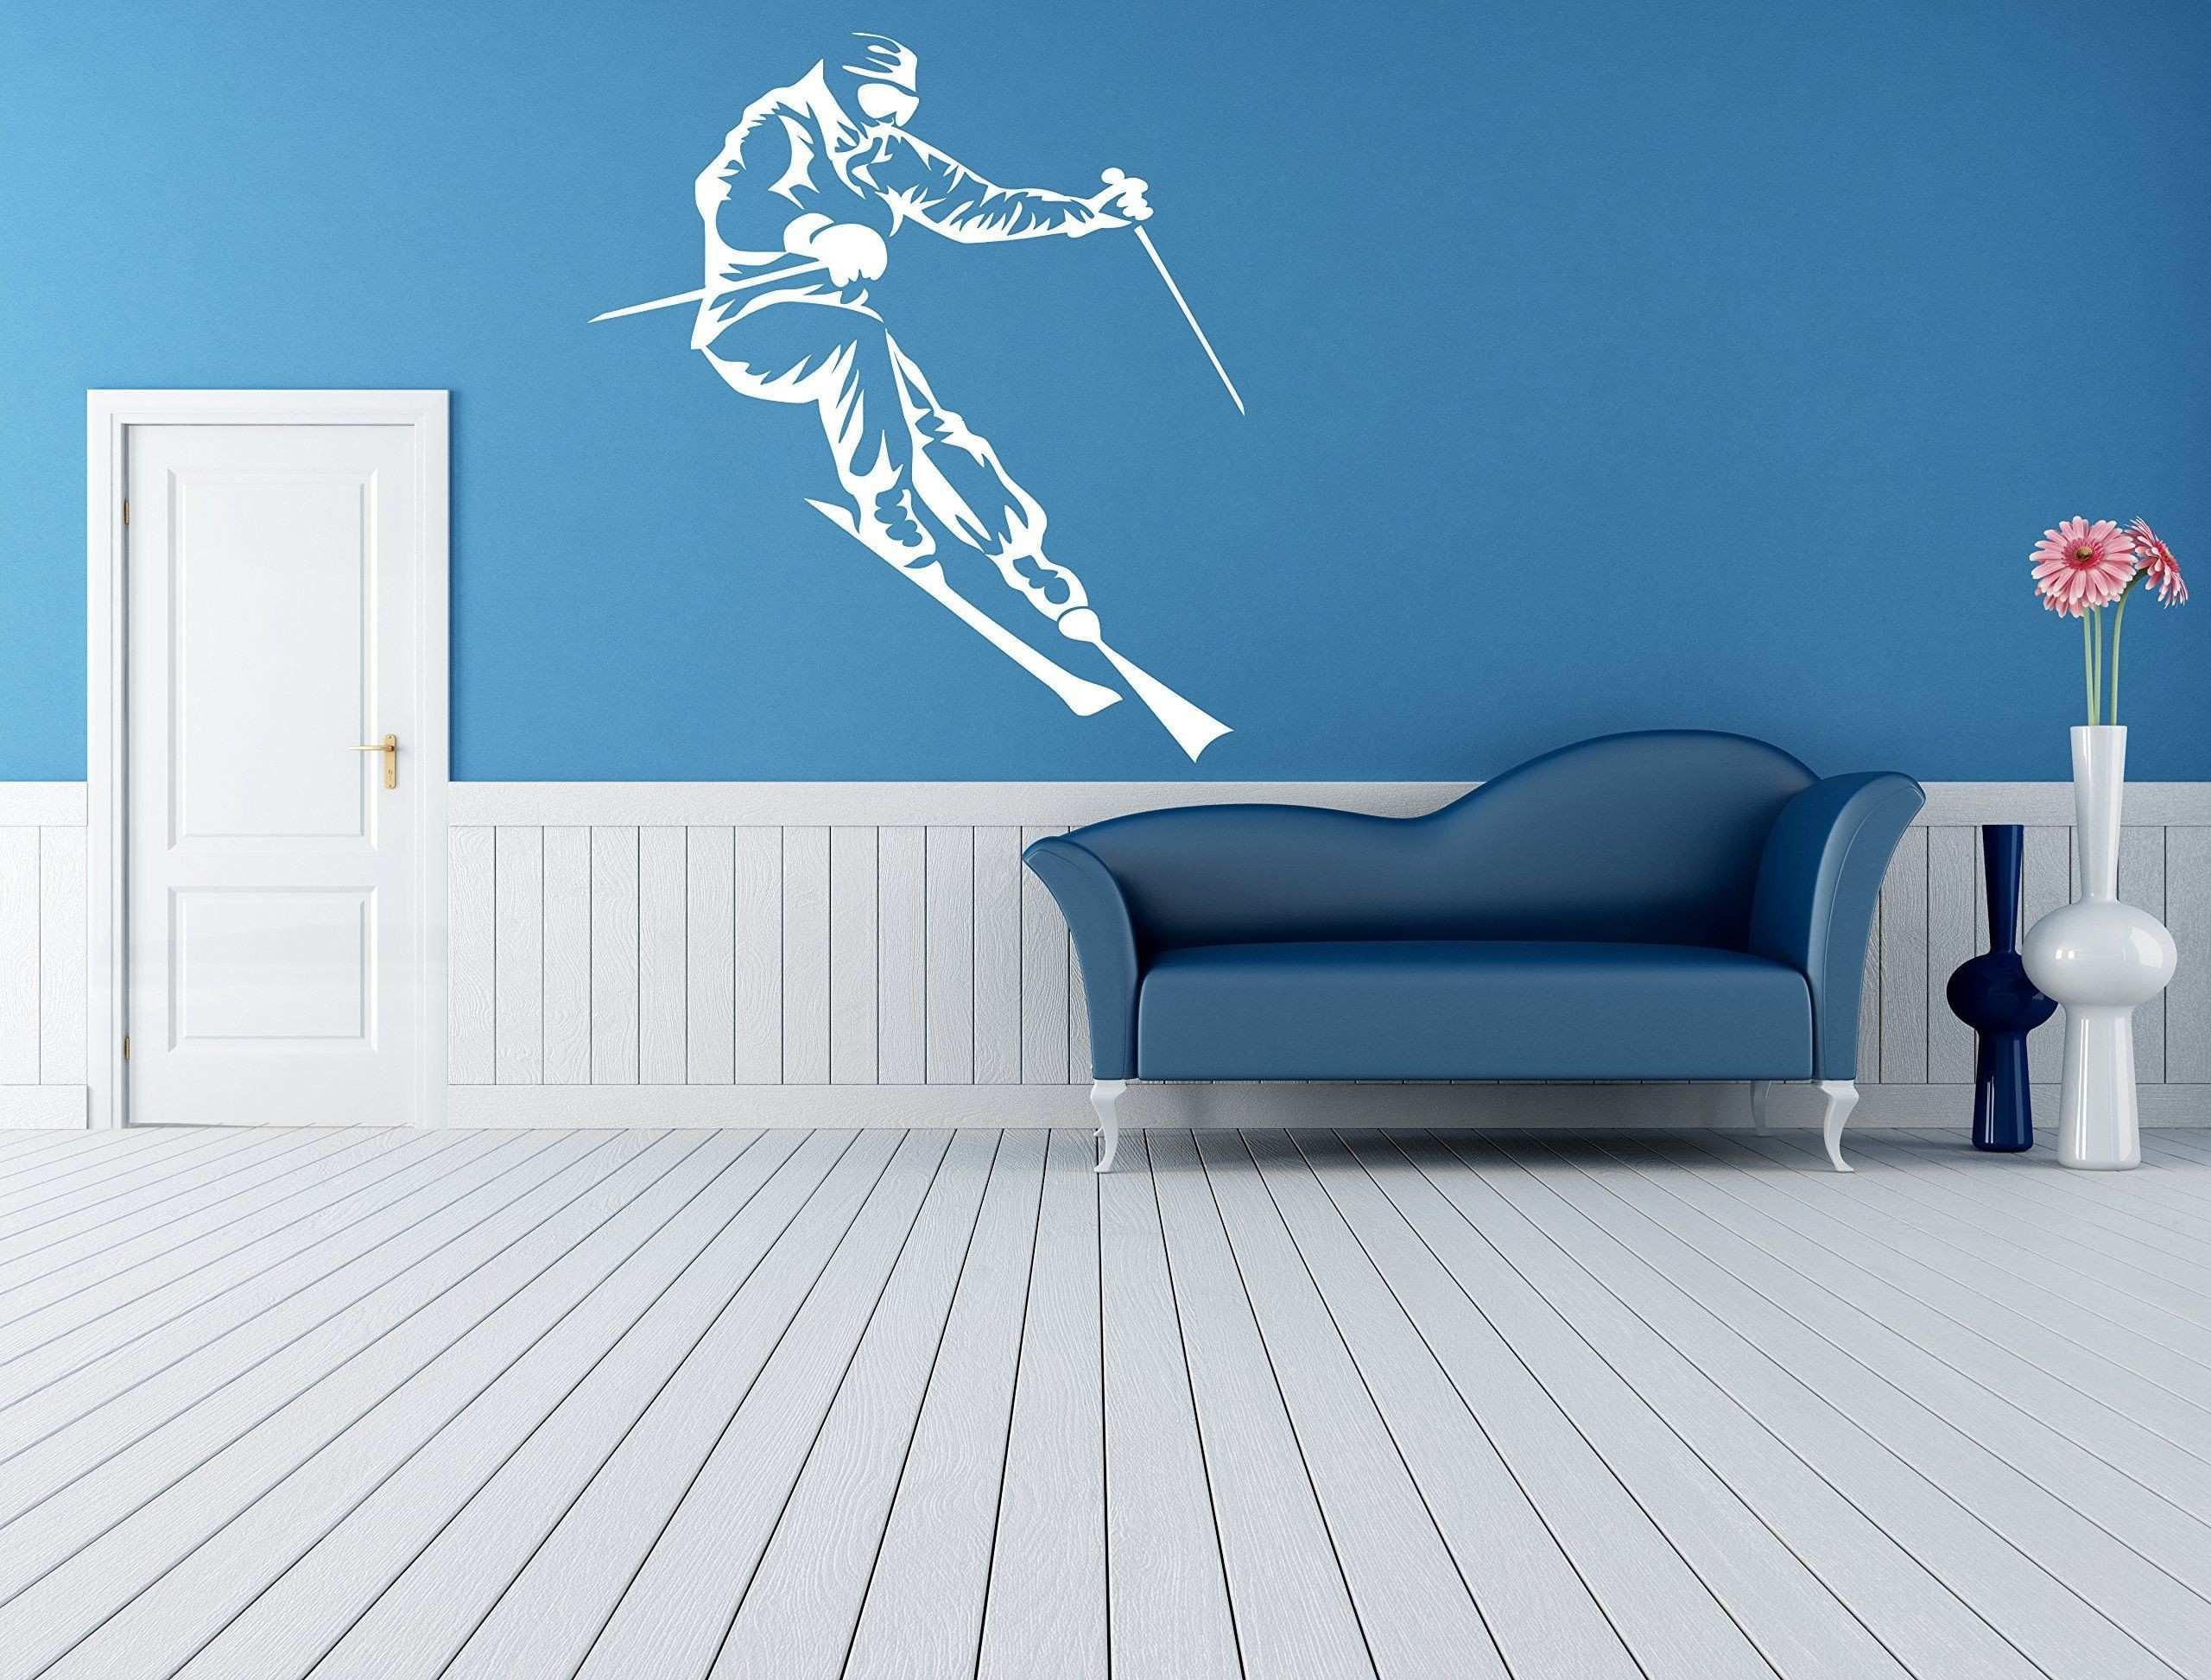 Wall Room Decor Art Vinyl Sticker Mural Decal Ski Snowboard Slop Big